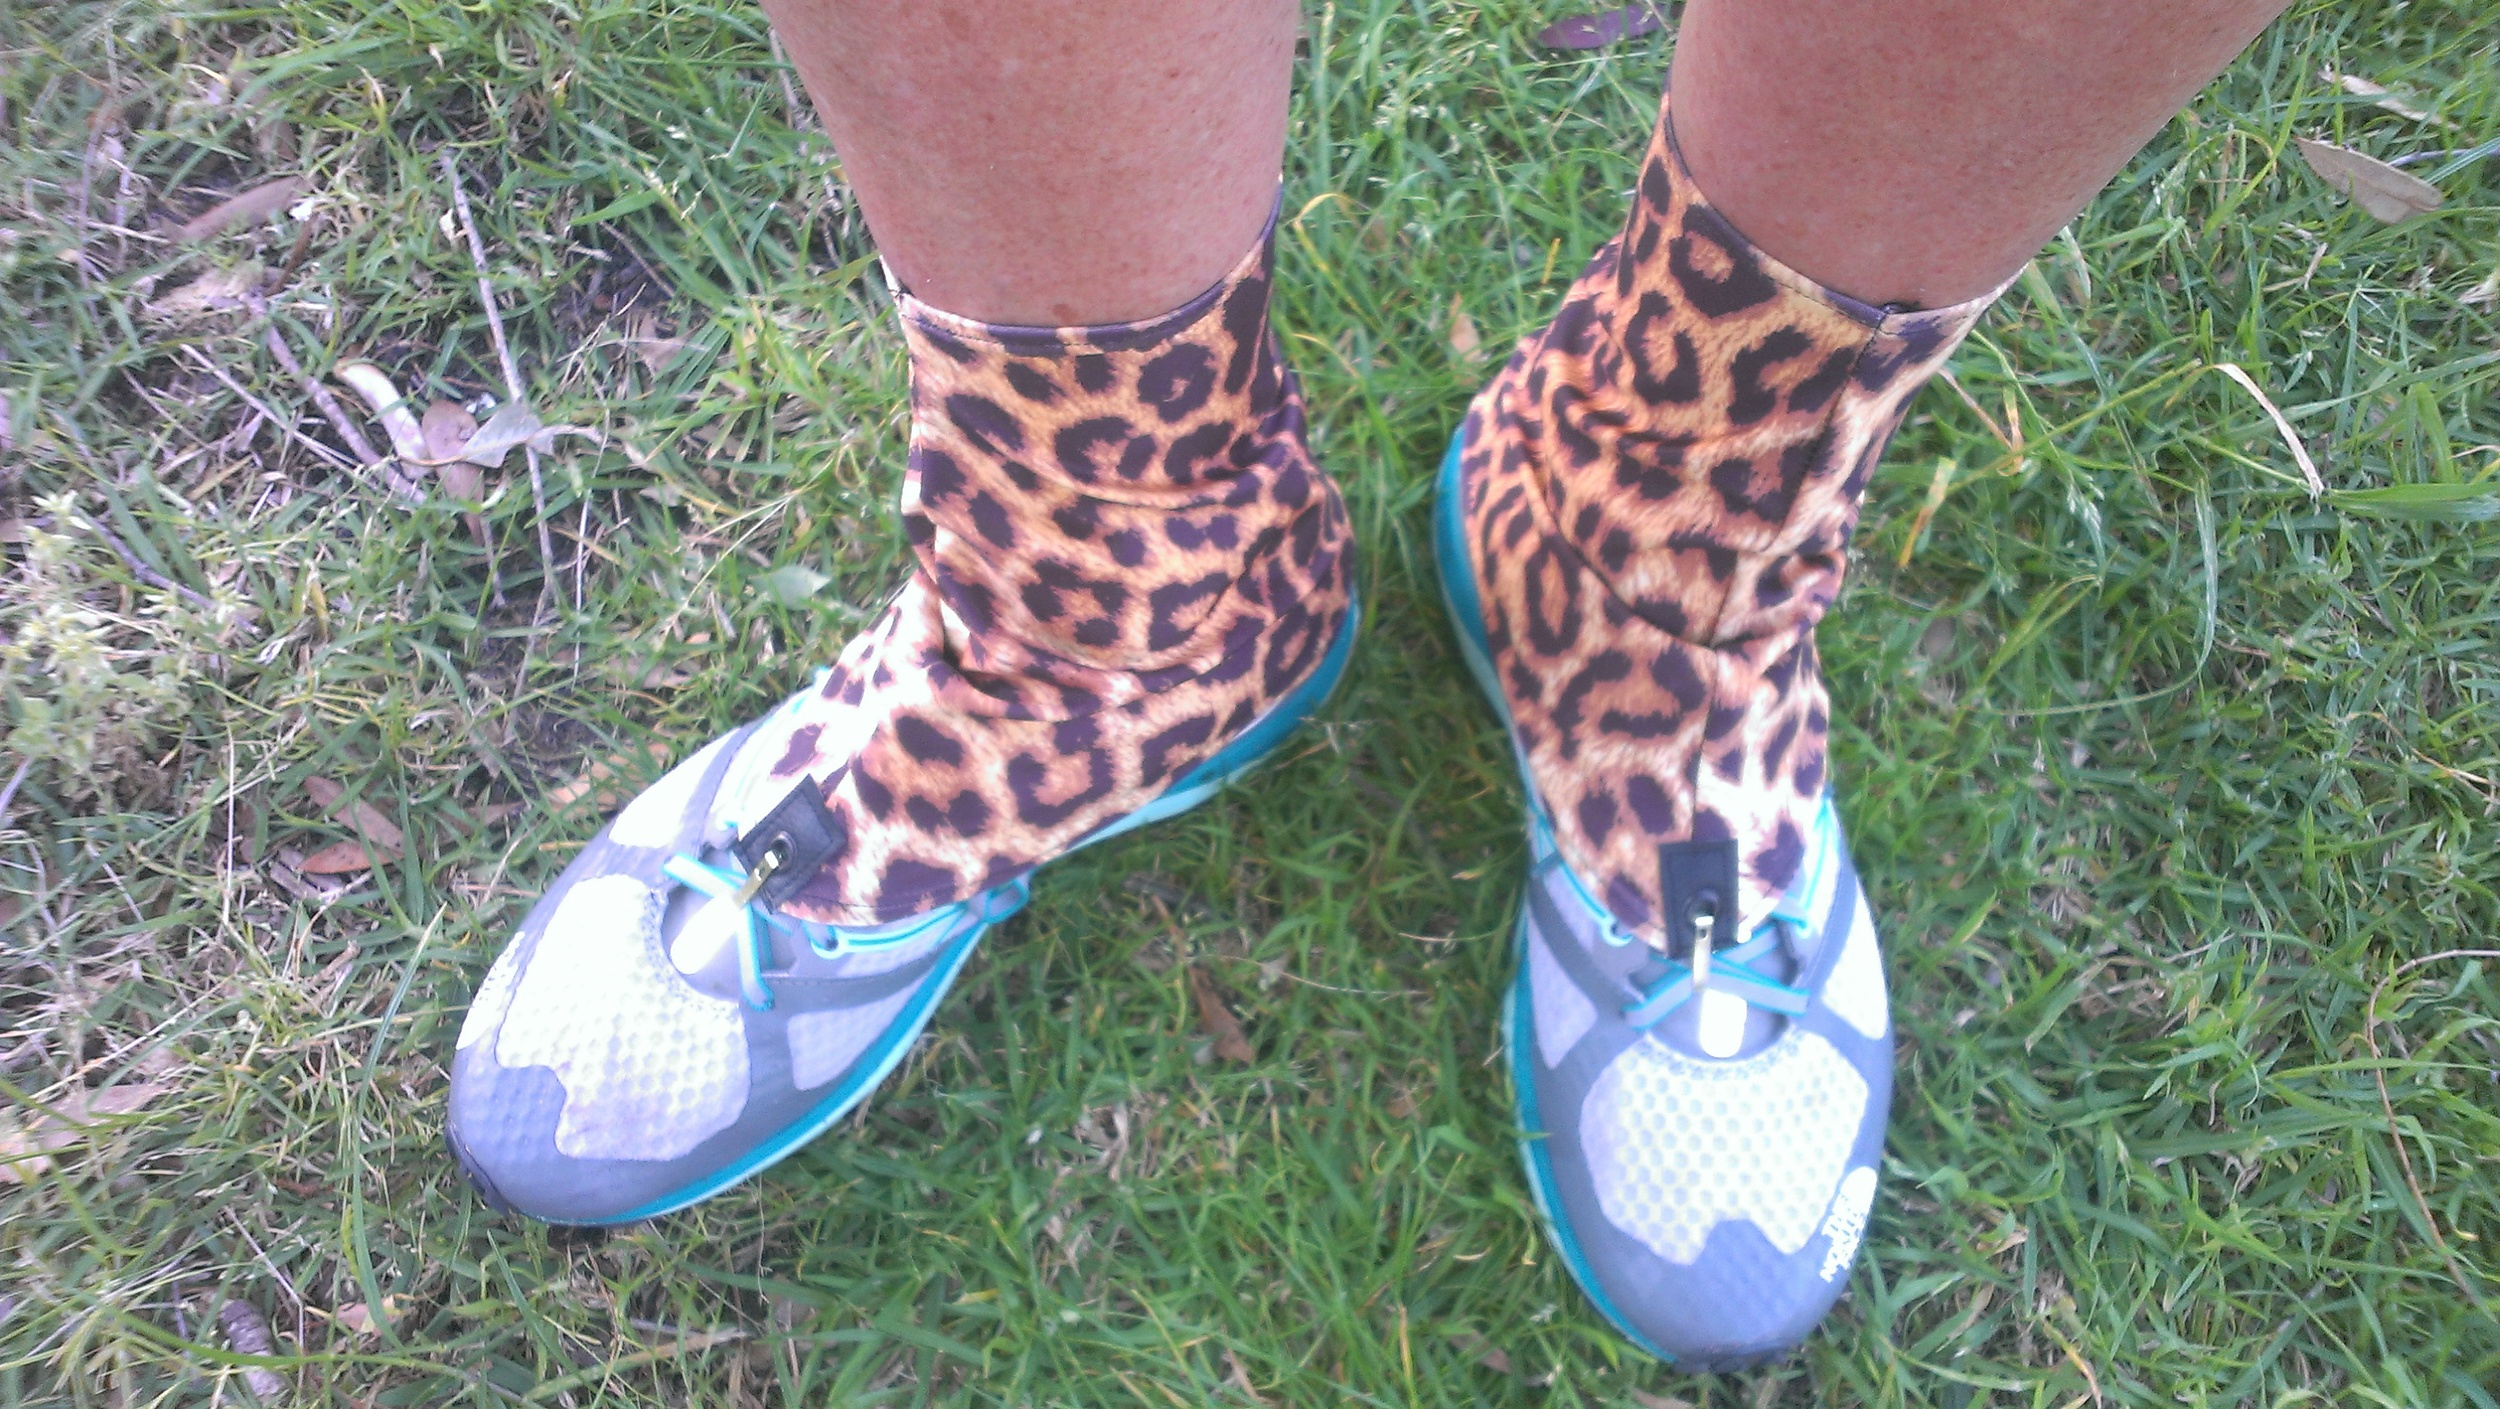 Port Botany Trail Gaiters - 19 Oct 2014.jpg